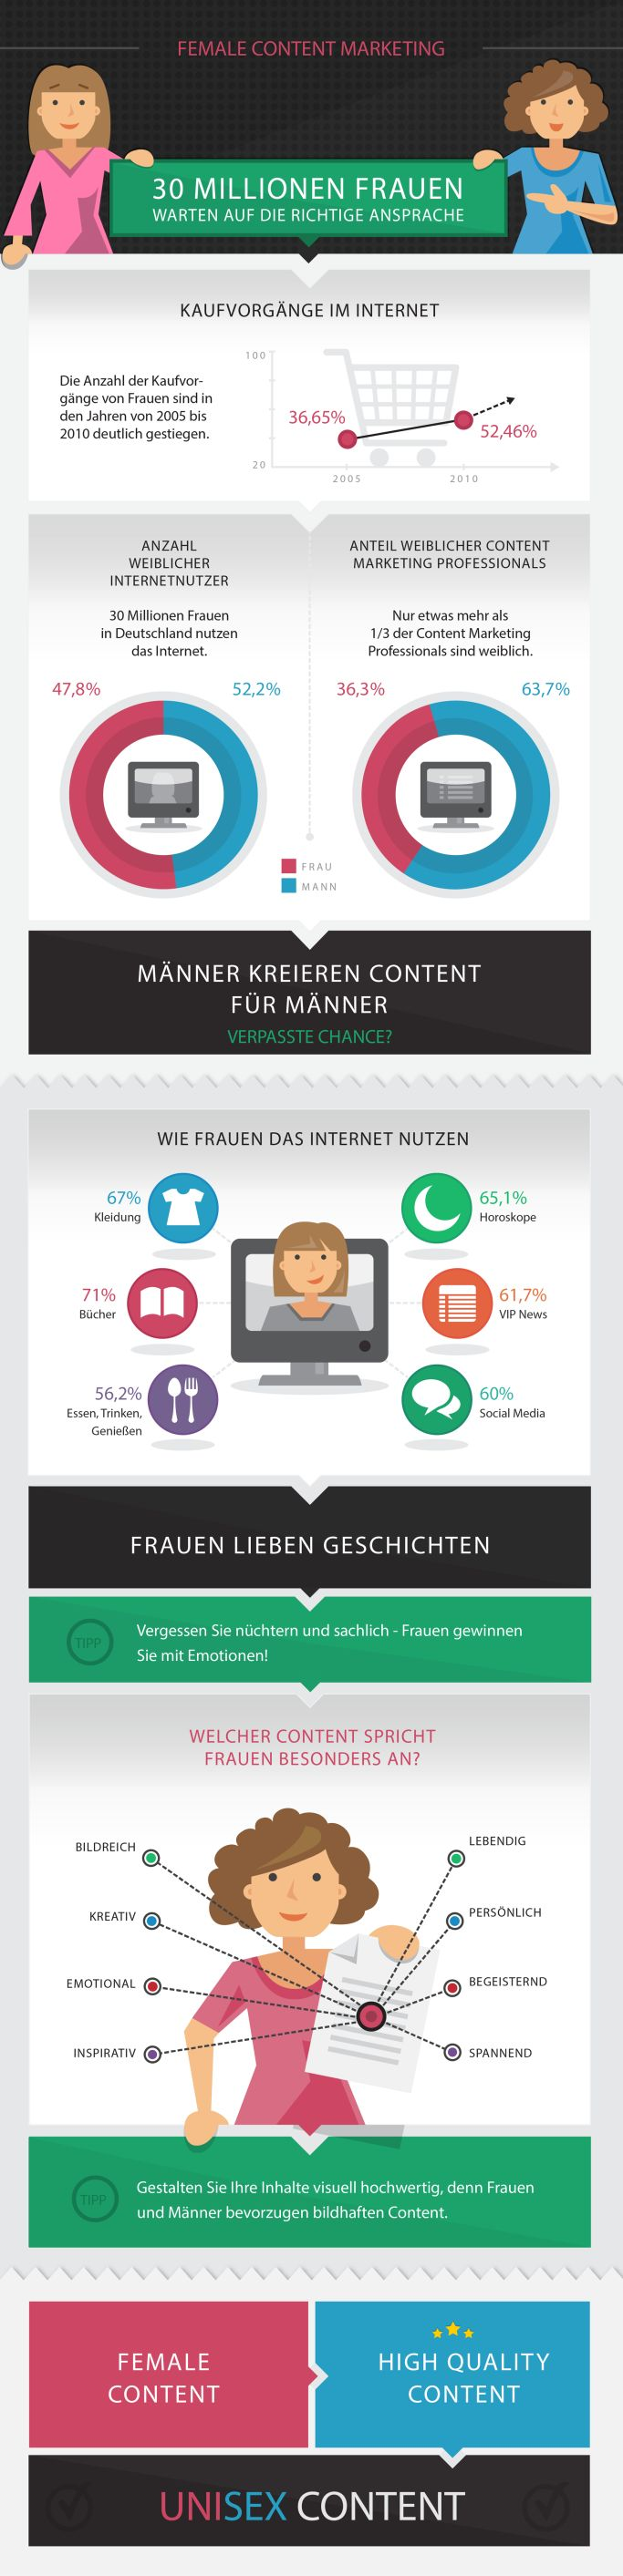 Female-Content-Marketing-Infografik